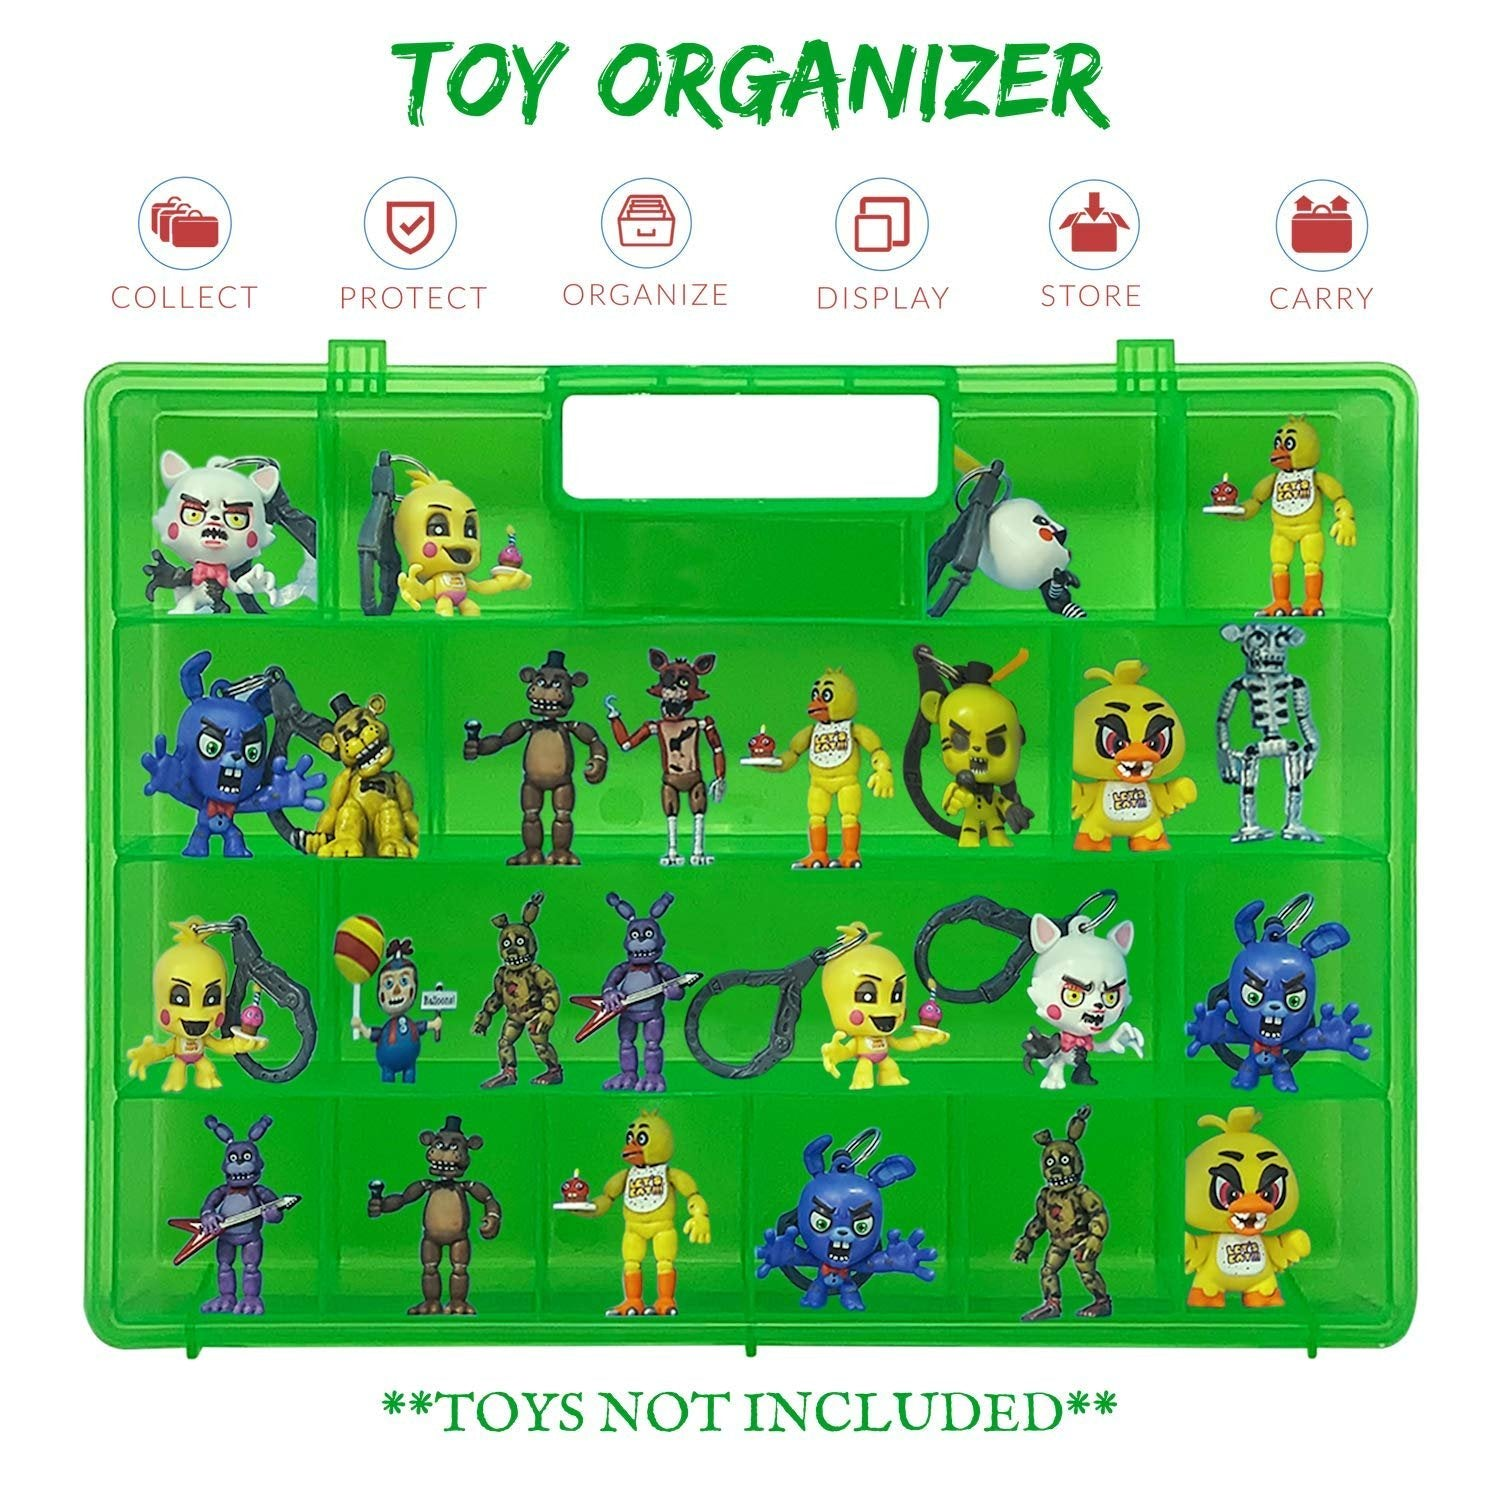 Life Made Better Fun Favorite Action Figures Green Case, Works with Five Nights at Freddy Figures, Long-Lasting, Solid Design Light Box with Built-in Handle, LMB Accessory & Organizer